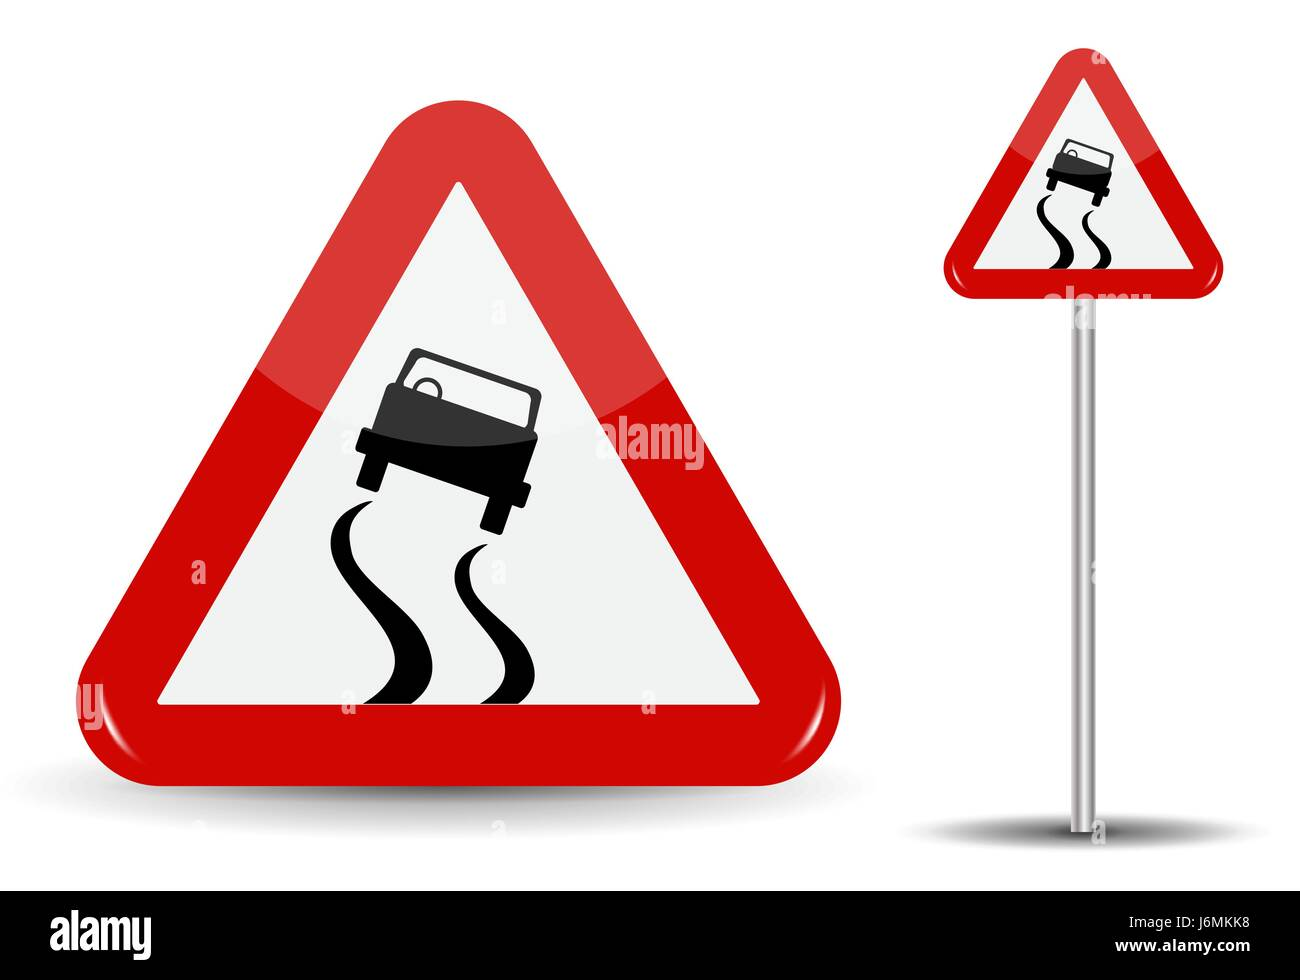 Sign Warning Slippery road. In Red Triangle is a sketchy machine that skidded. Vector Illustration. - Stock Image